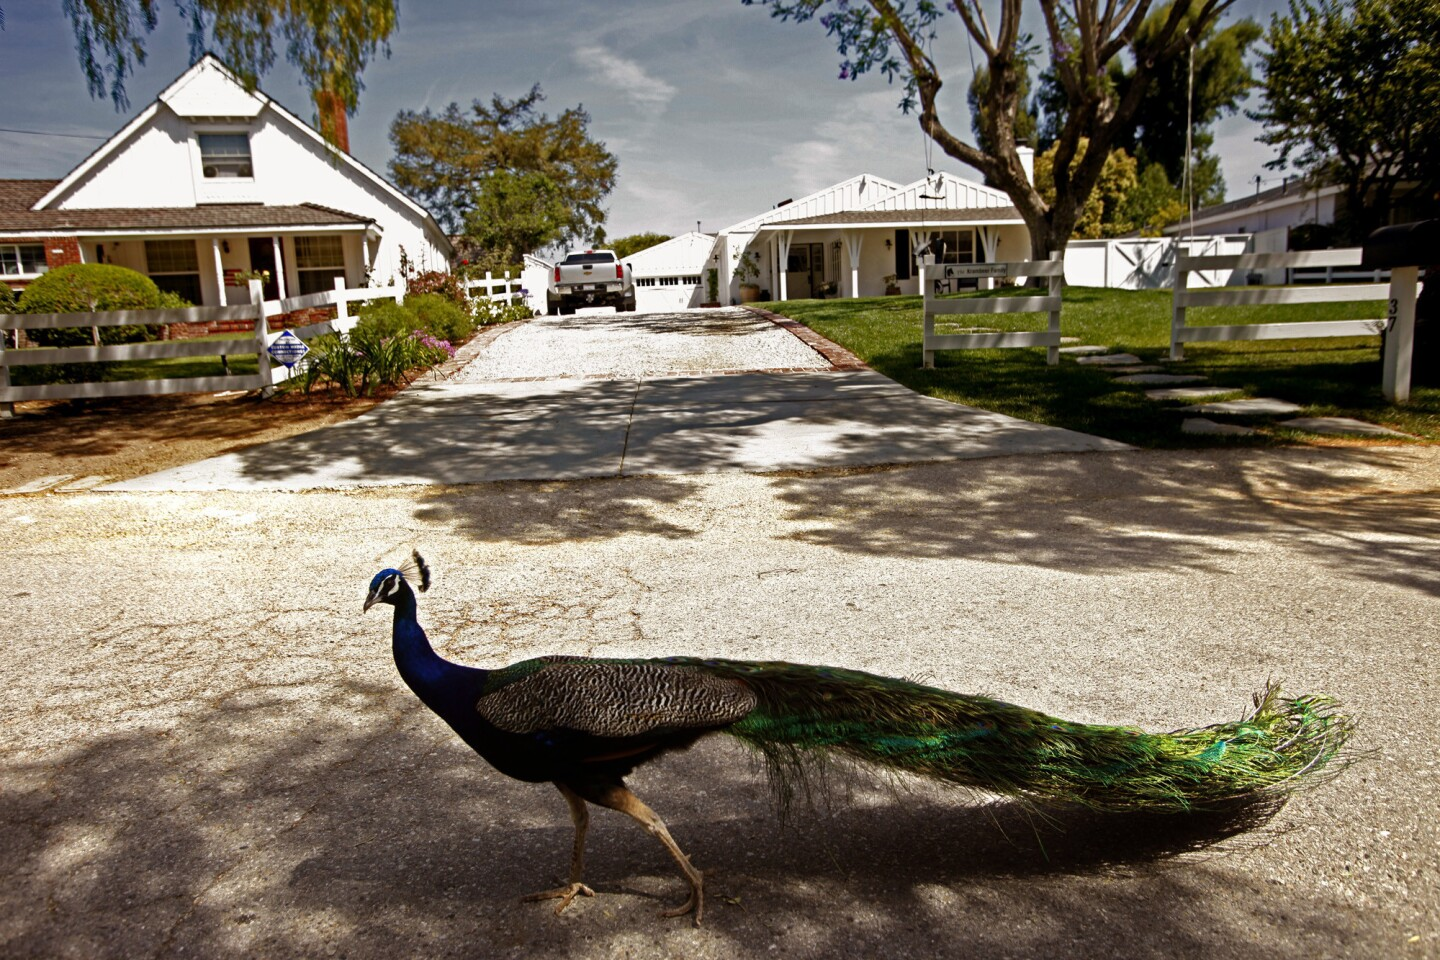 Indian blue peacocks were imported to the Palos Verdes Peninsula a century ago.